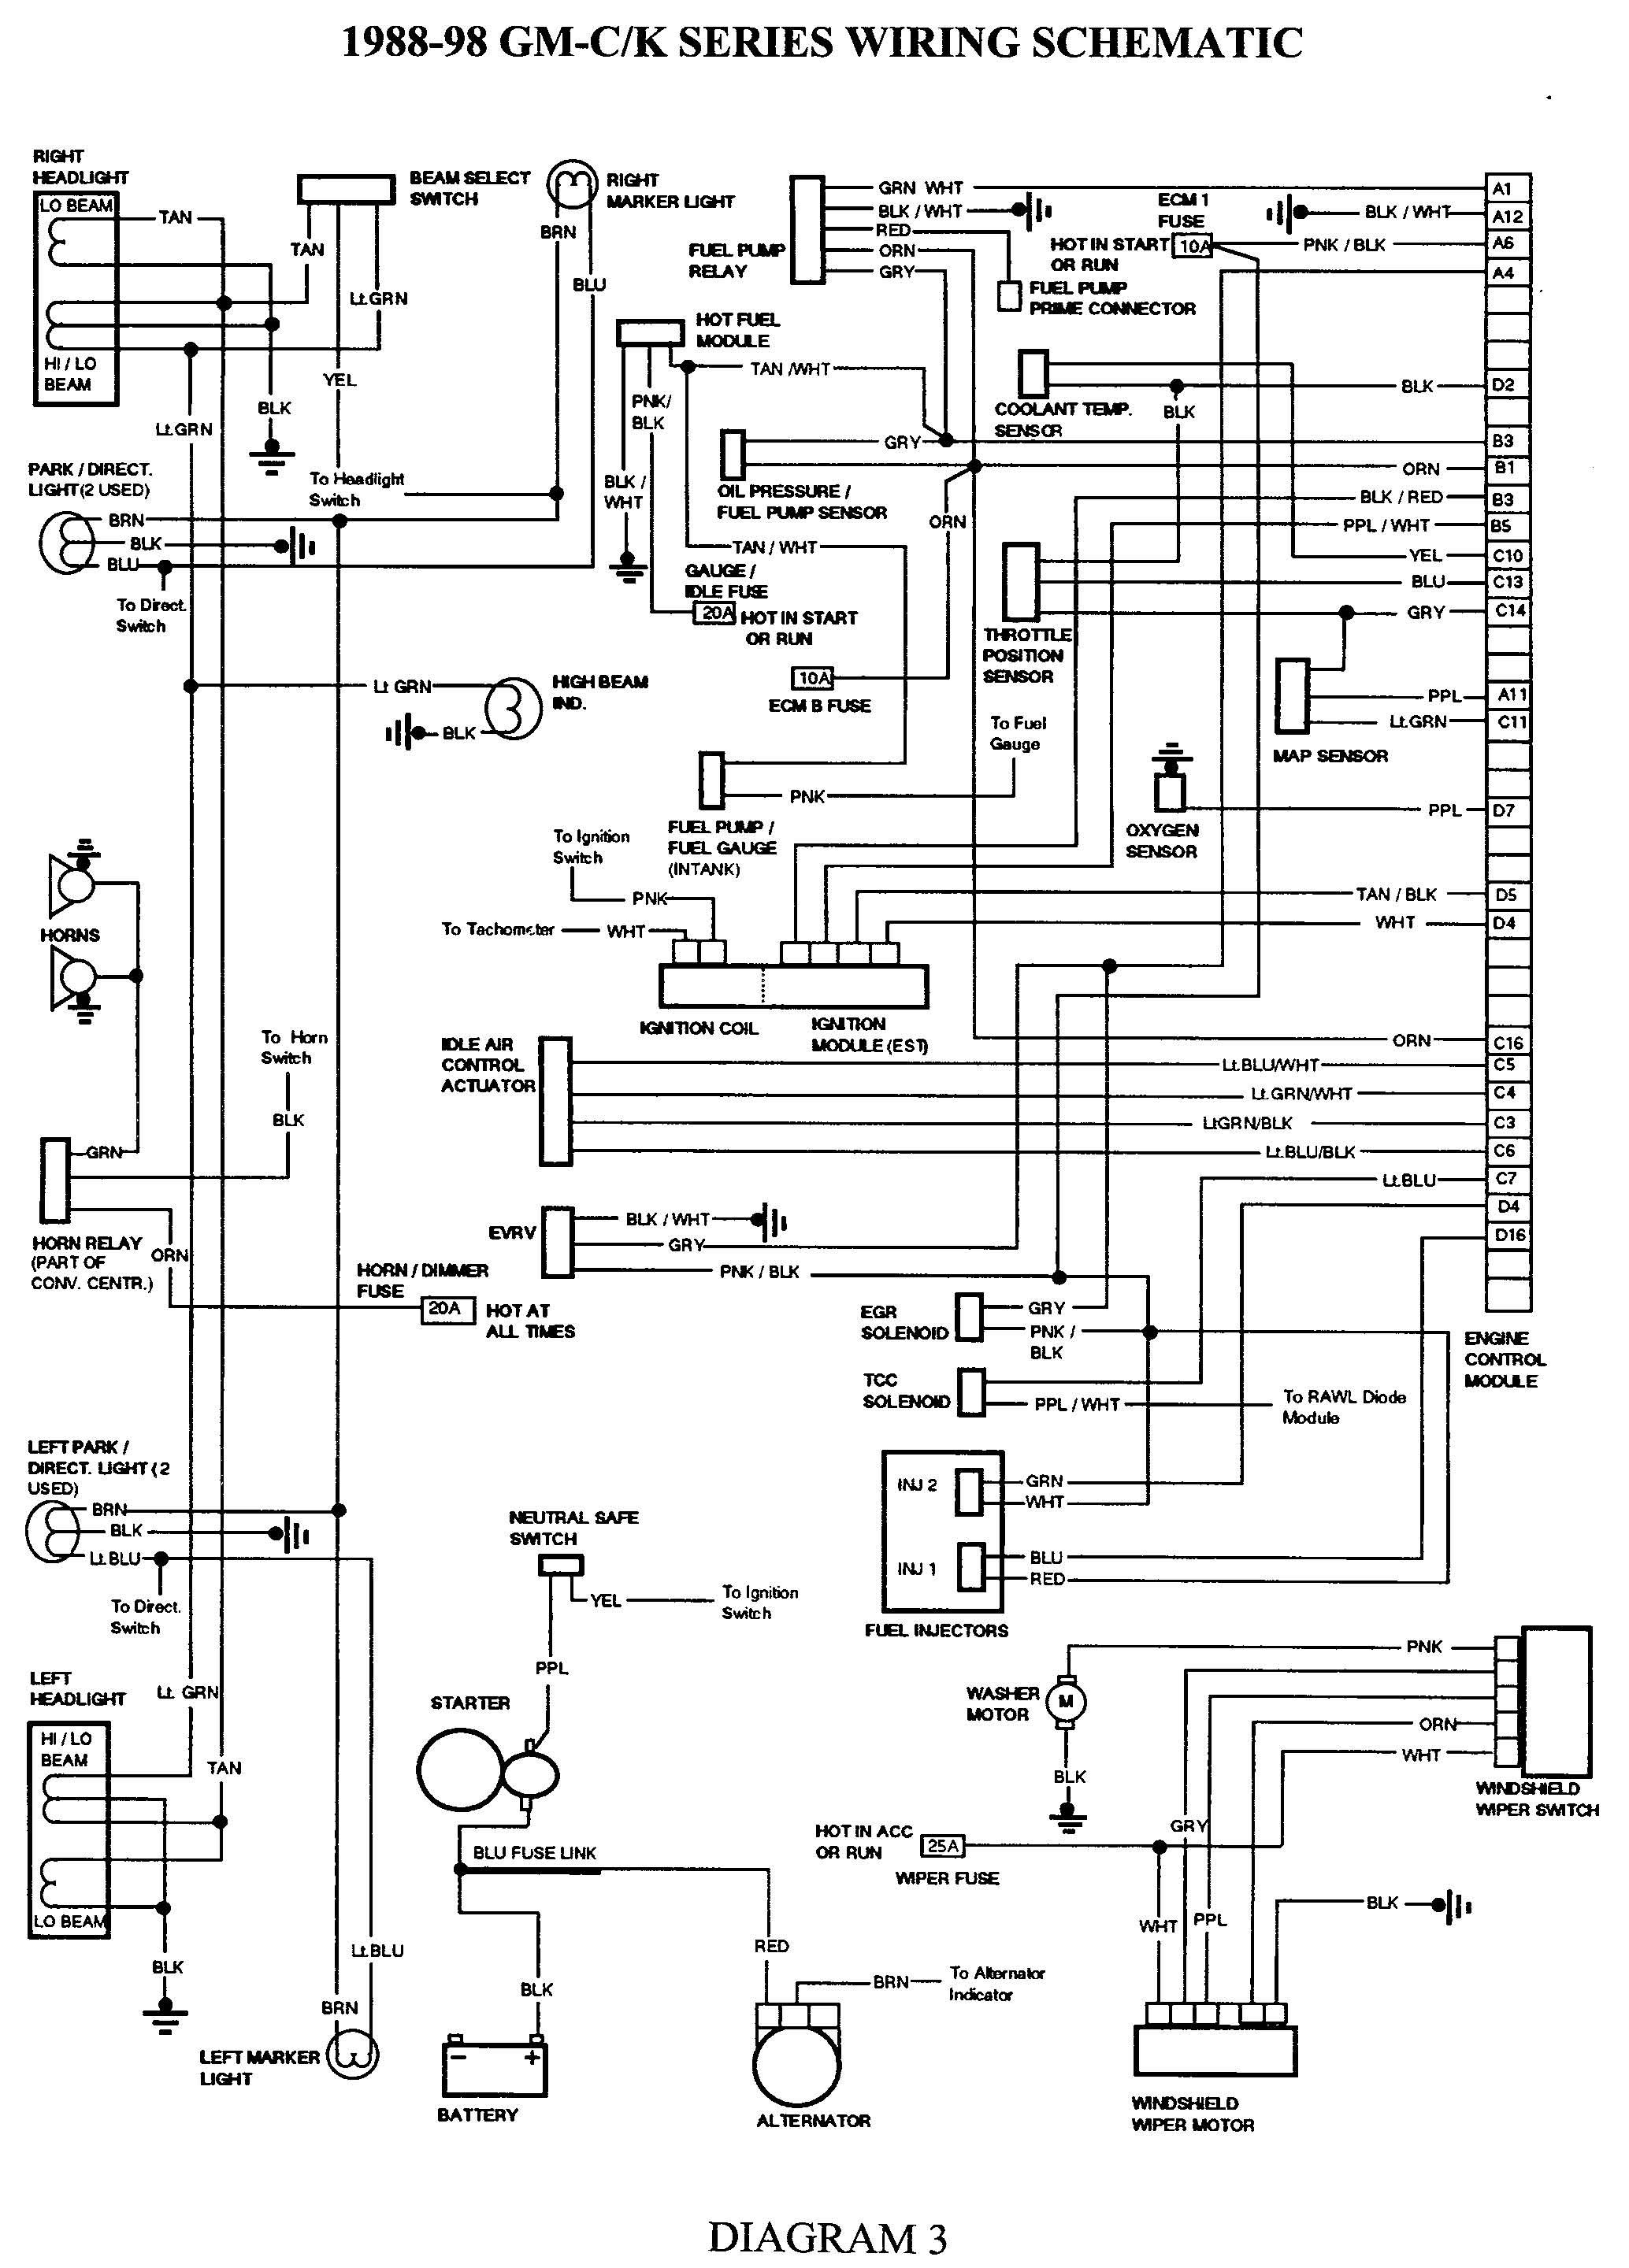 3000gt Parts Diagram Wiring Schematic Archive Of Automotive Mitsubishi Fuse Box 1994 Chevy Astro Van Schematics Rh Thyl Co Uk